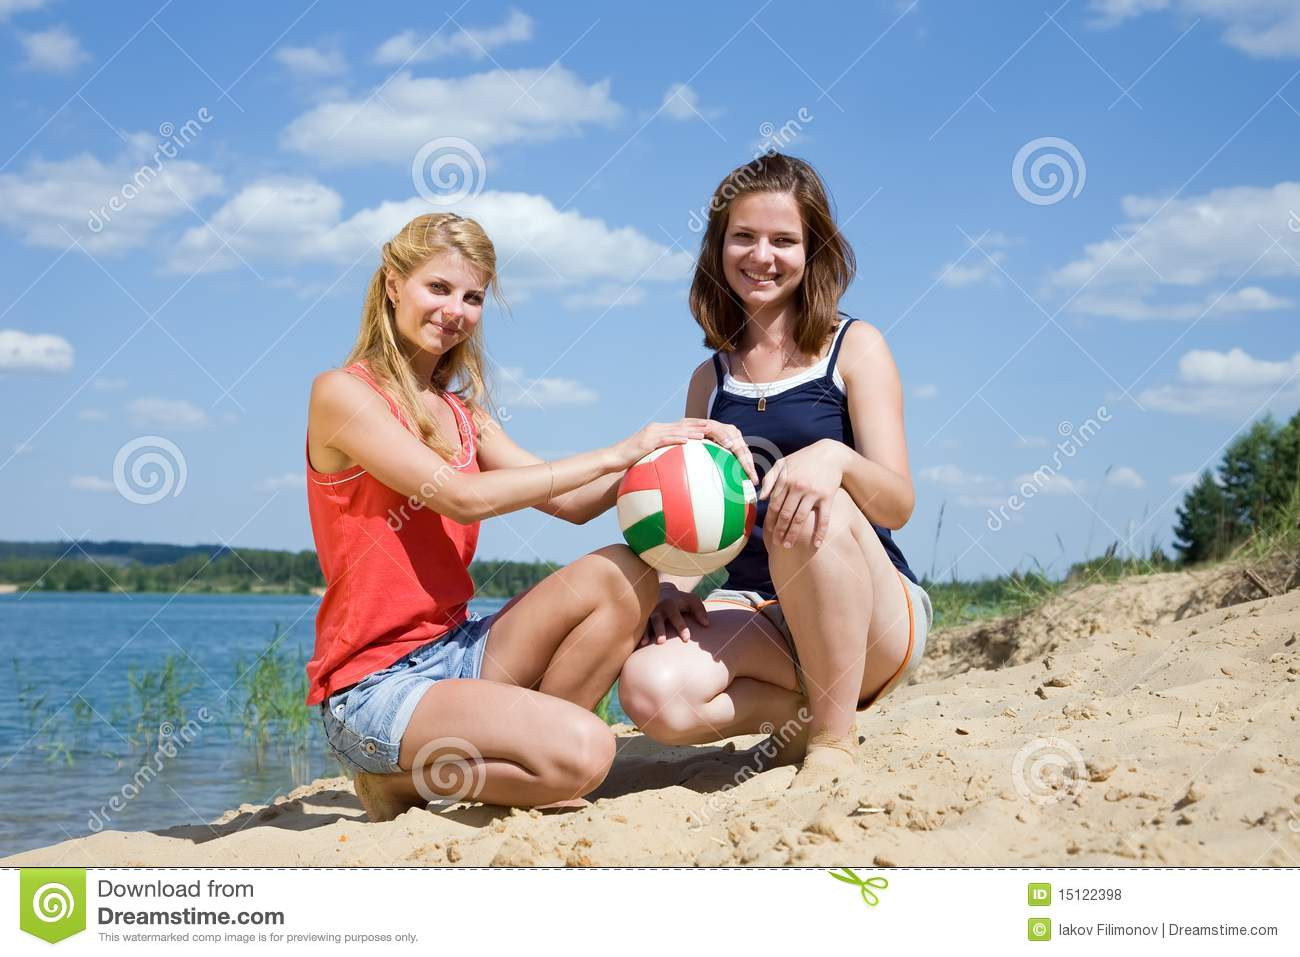 girls posing with volleyballs